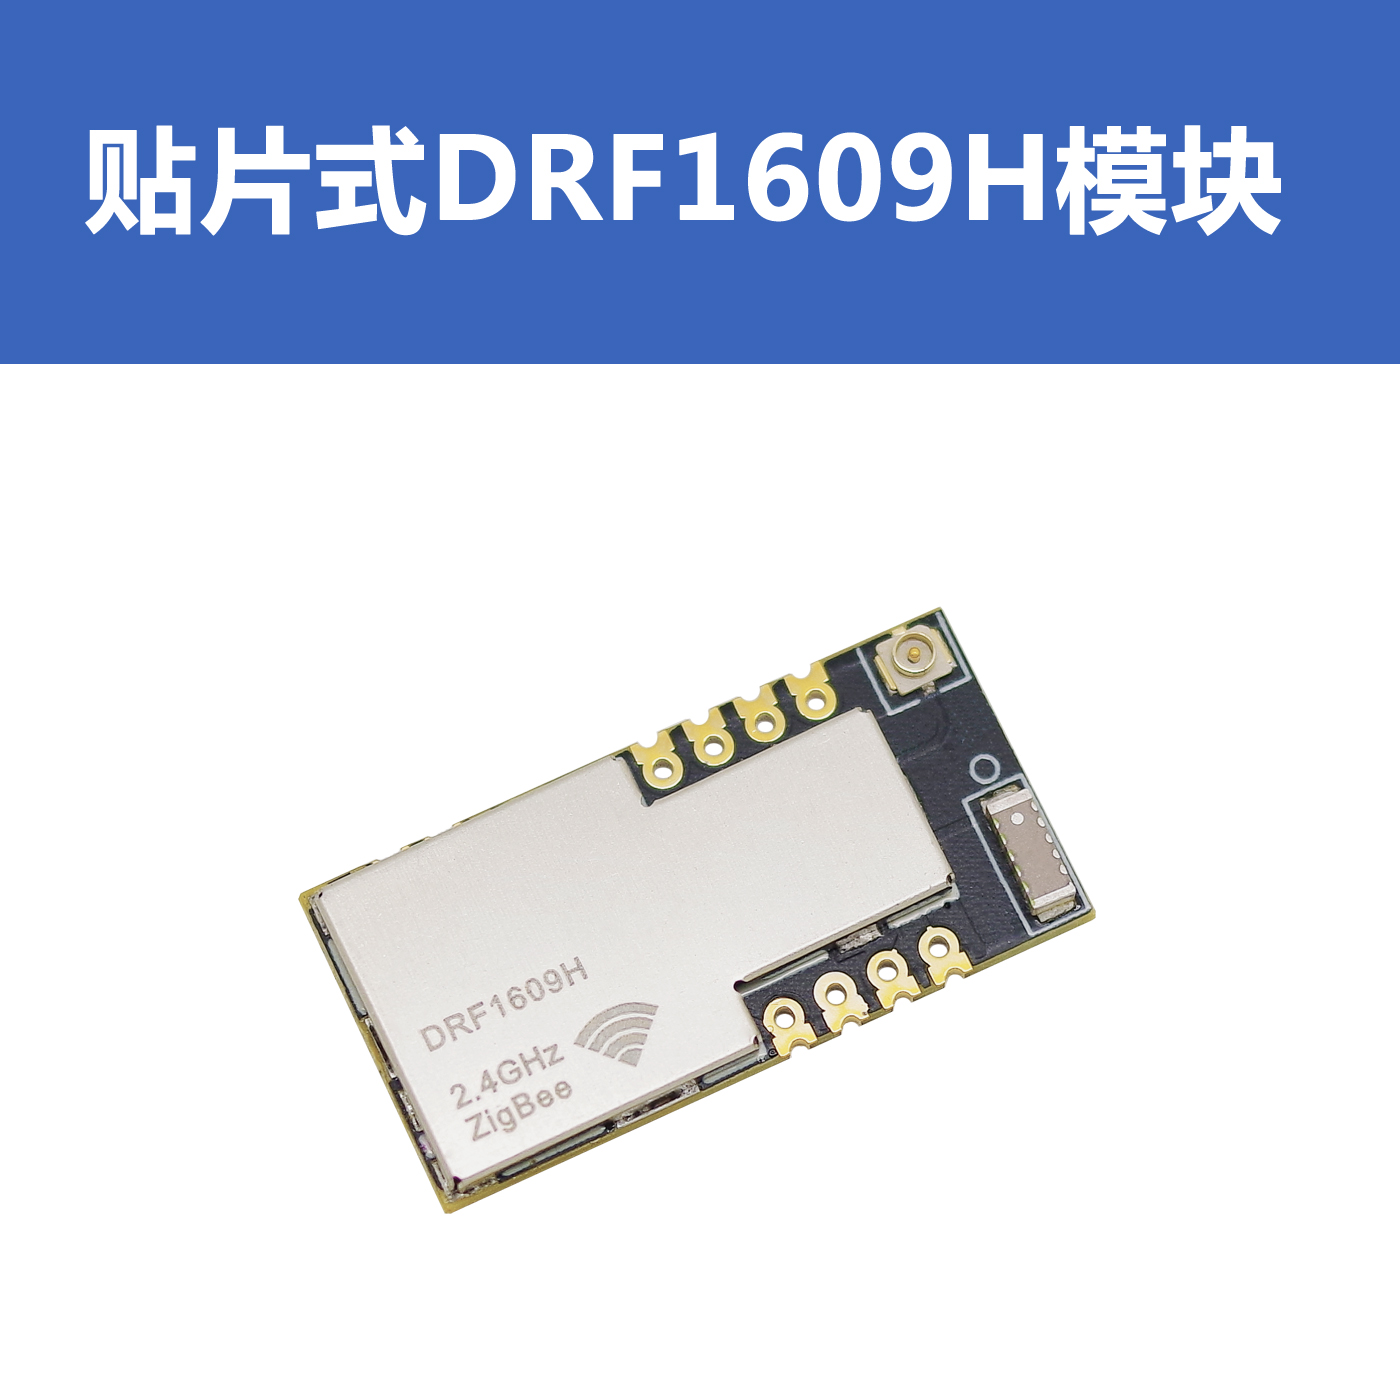 UART serial port to ZigBee wireless module cc2630 chip DRF1609H with PA 1.6km freeshipping uart to zigbee wireless module 1 6km cc2530 module with antenna